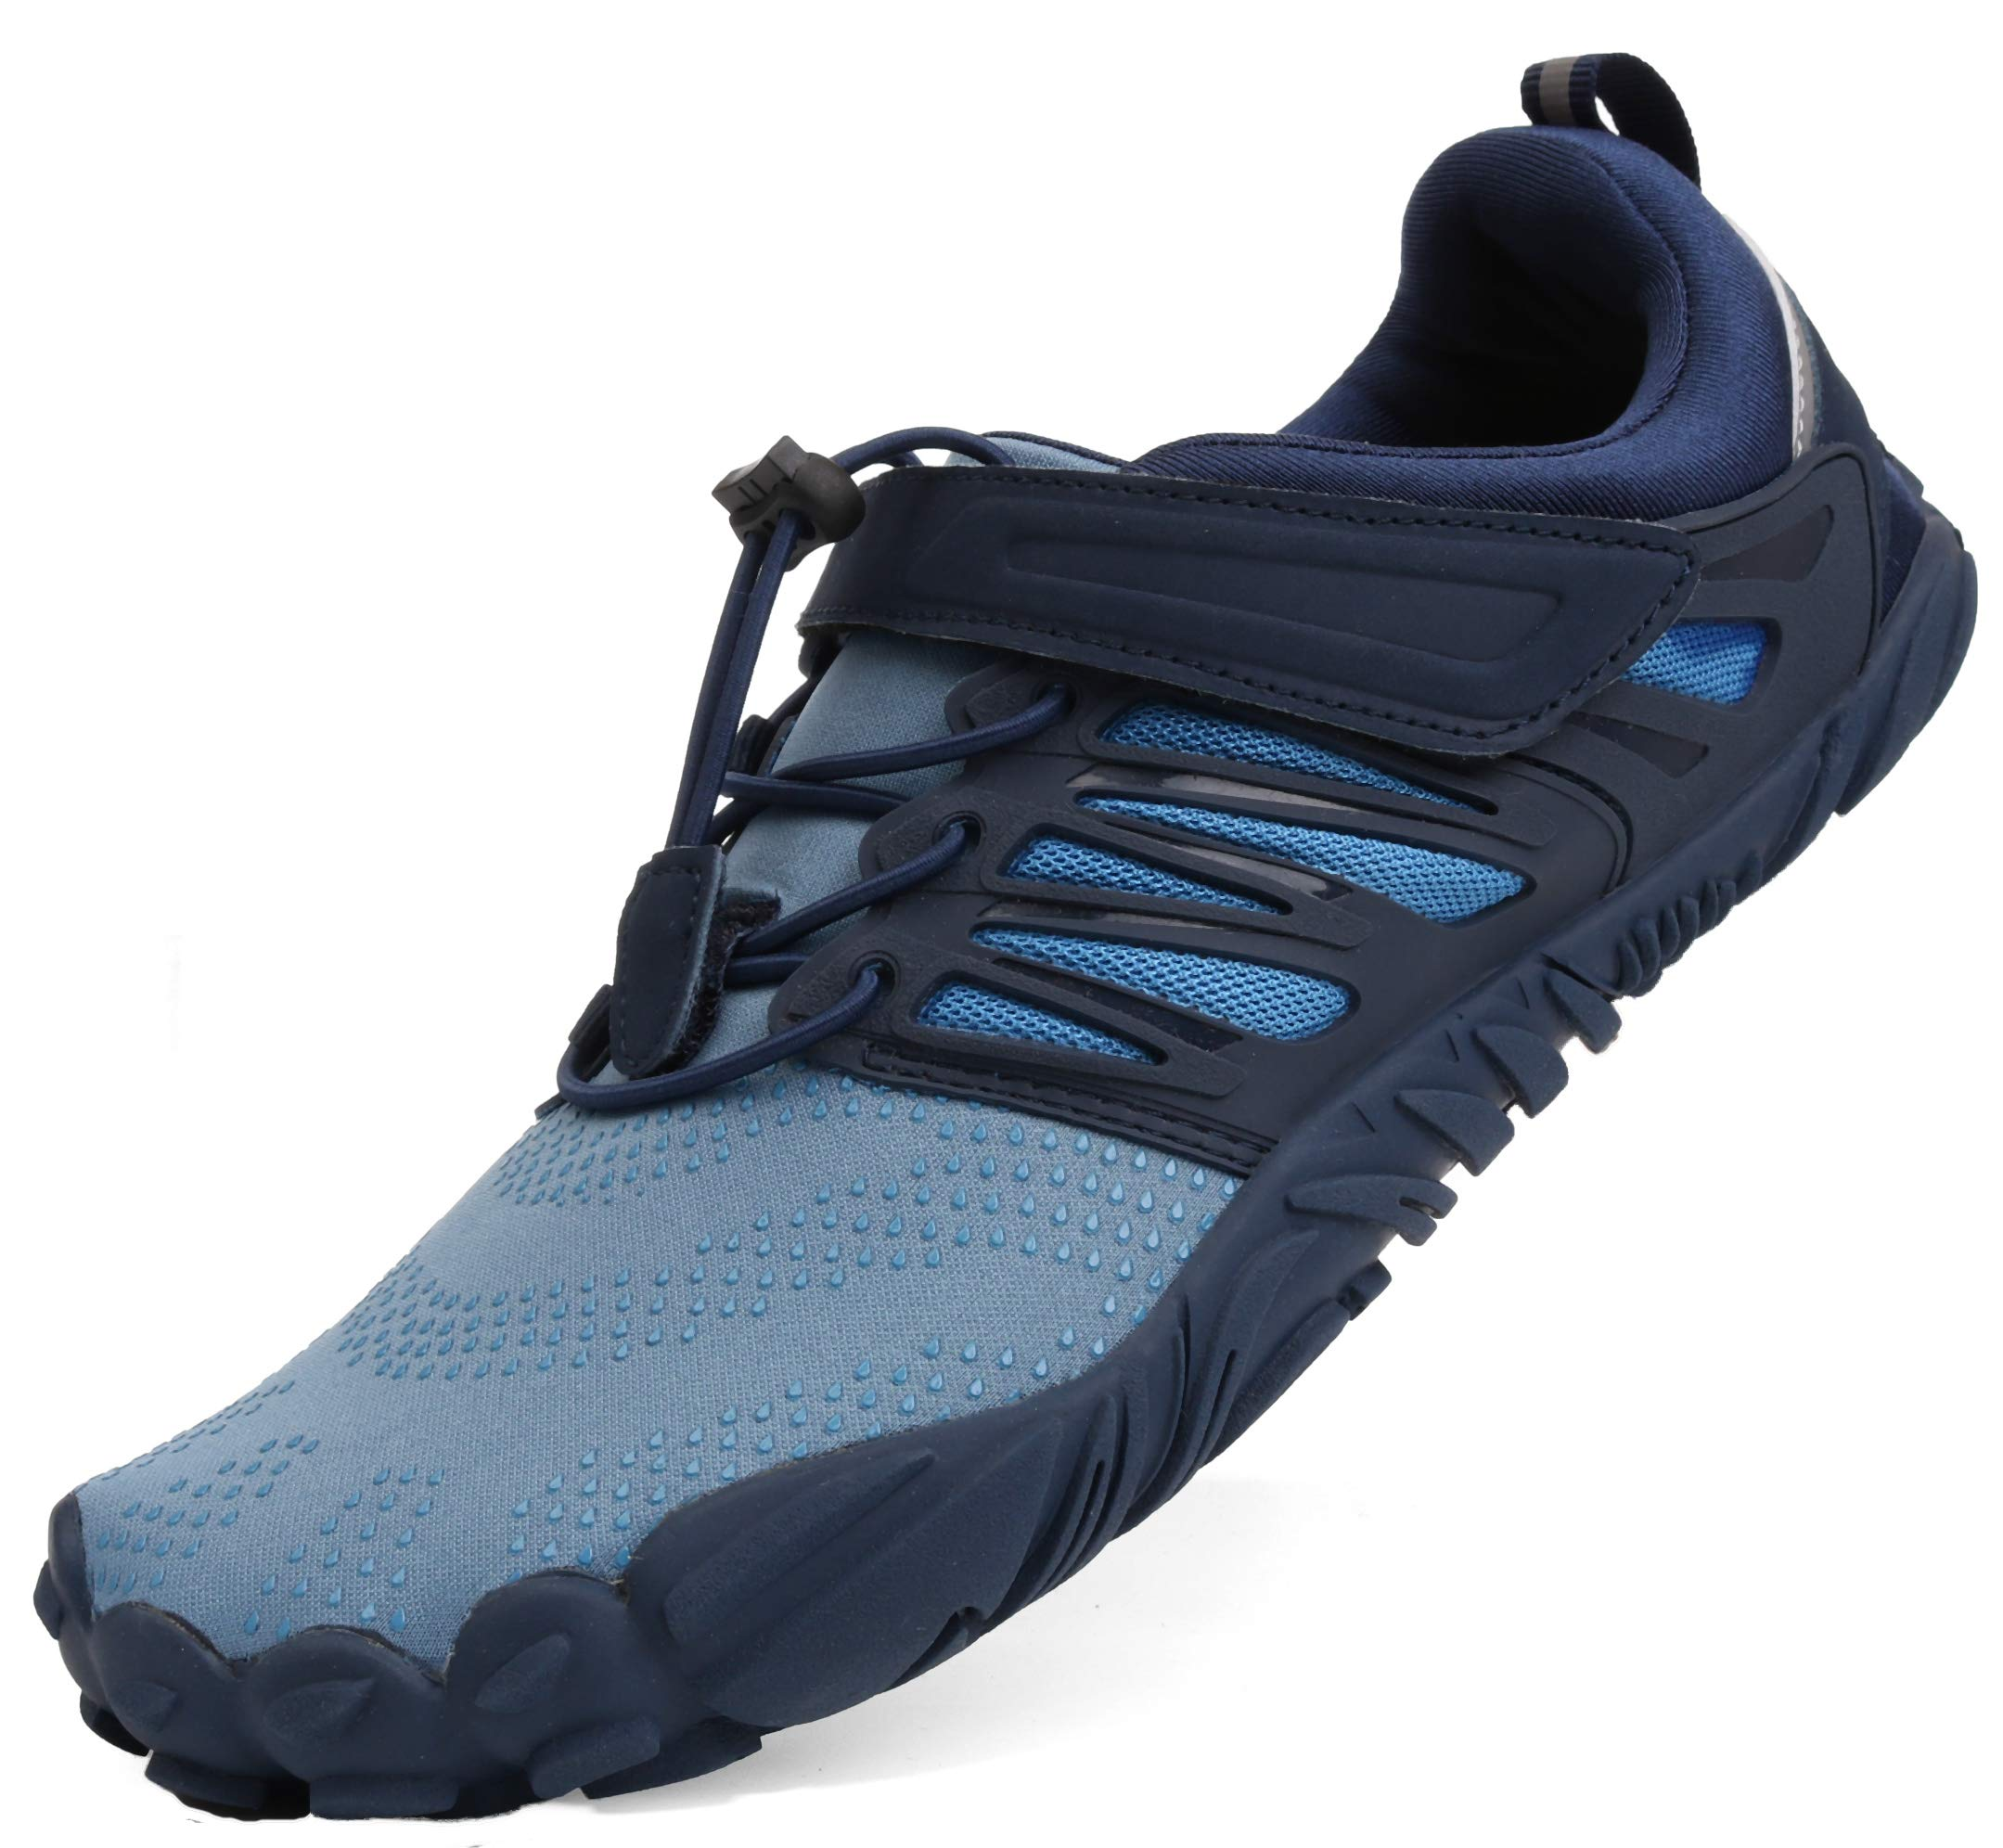 WHITIN Men's Minimalist Barefoot Shoes Low Zero Drop Trail Running 5 Five Fingers Wide Toe Box for Male Fivefinger Runner Pilates Hiking Blue Size 10 by WHITIN